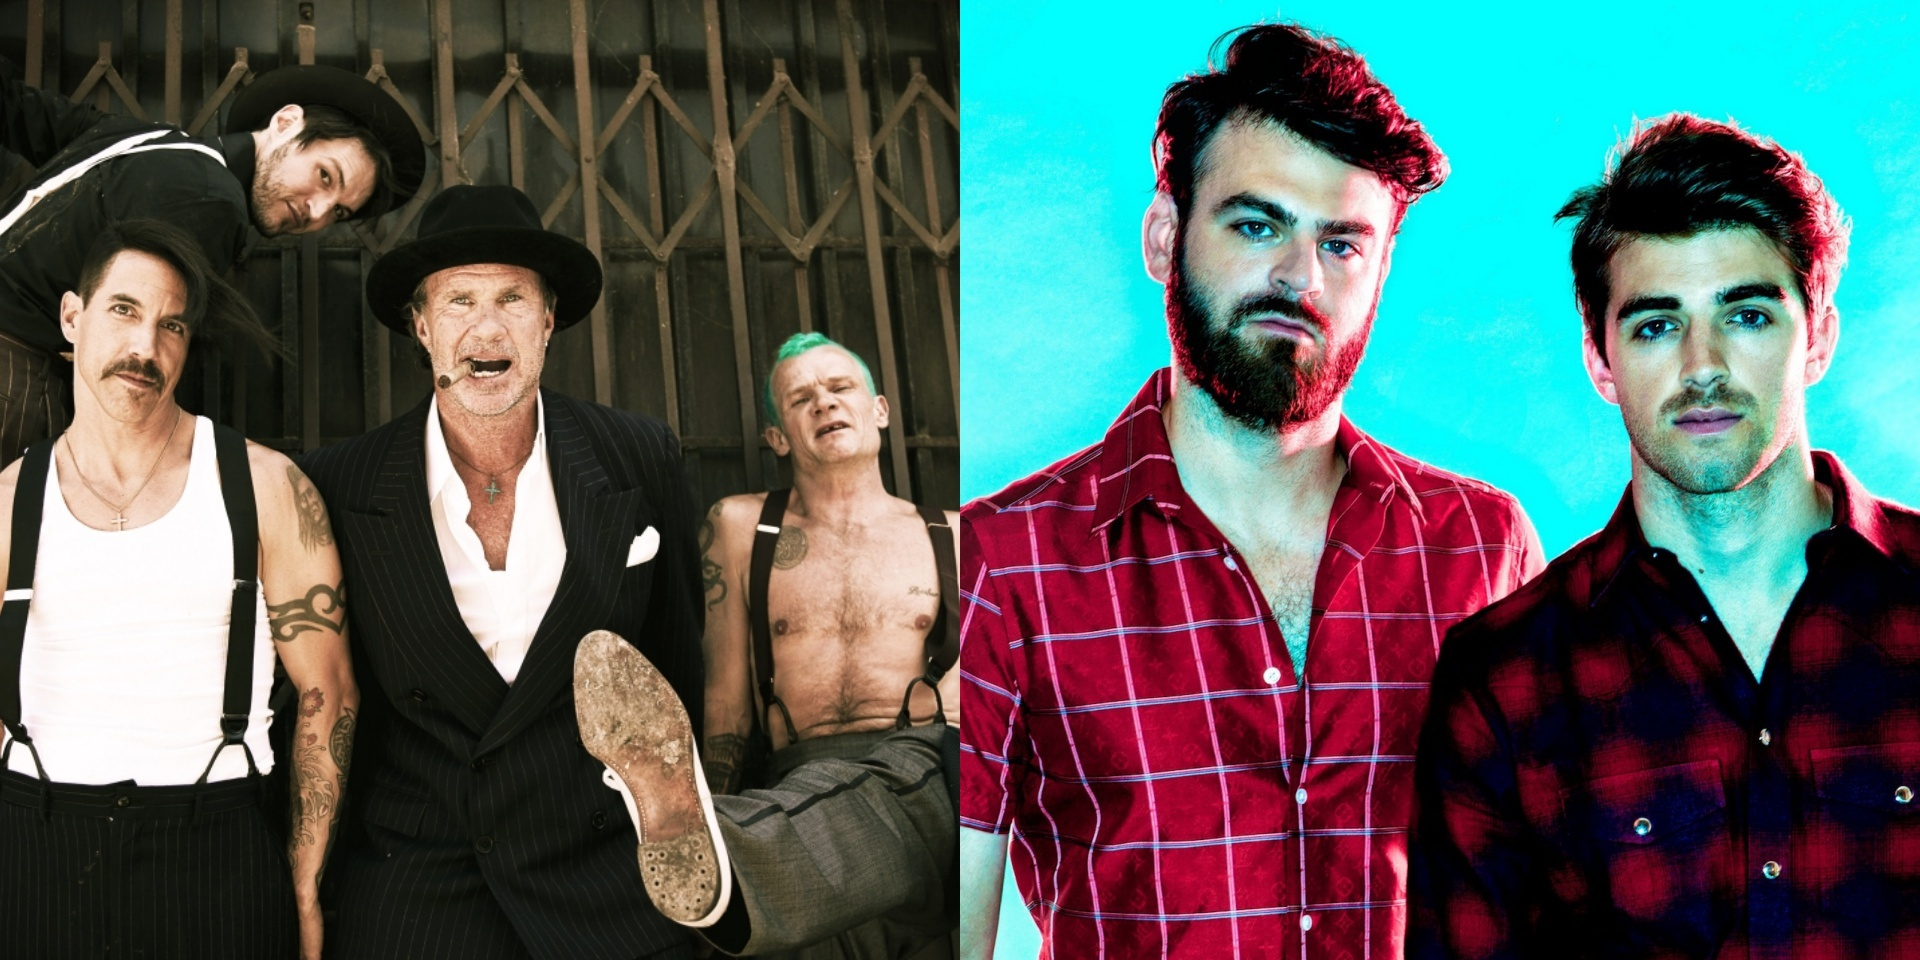 Red Hot Chili Peppers, The Chainsmokers and B'z to headline Summer Sonic 2019